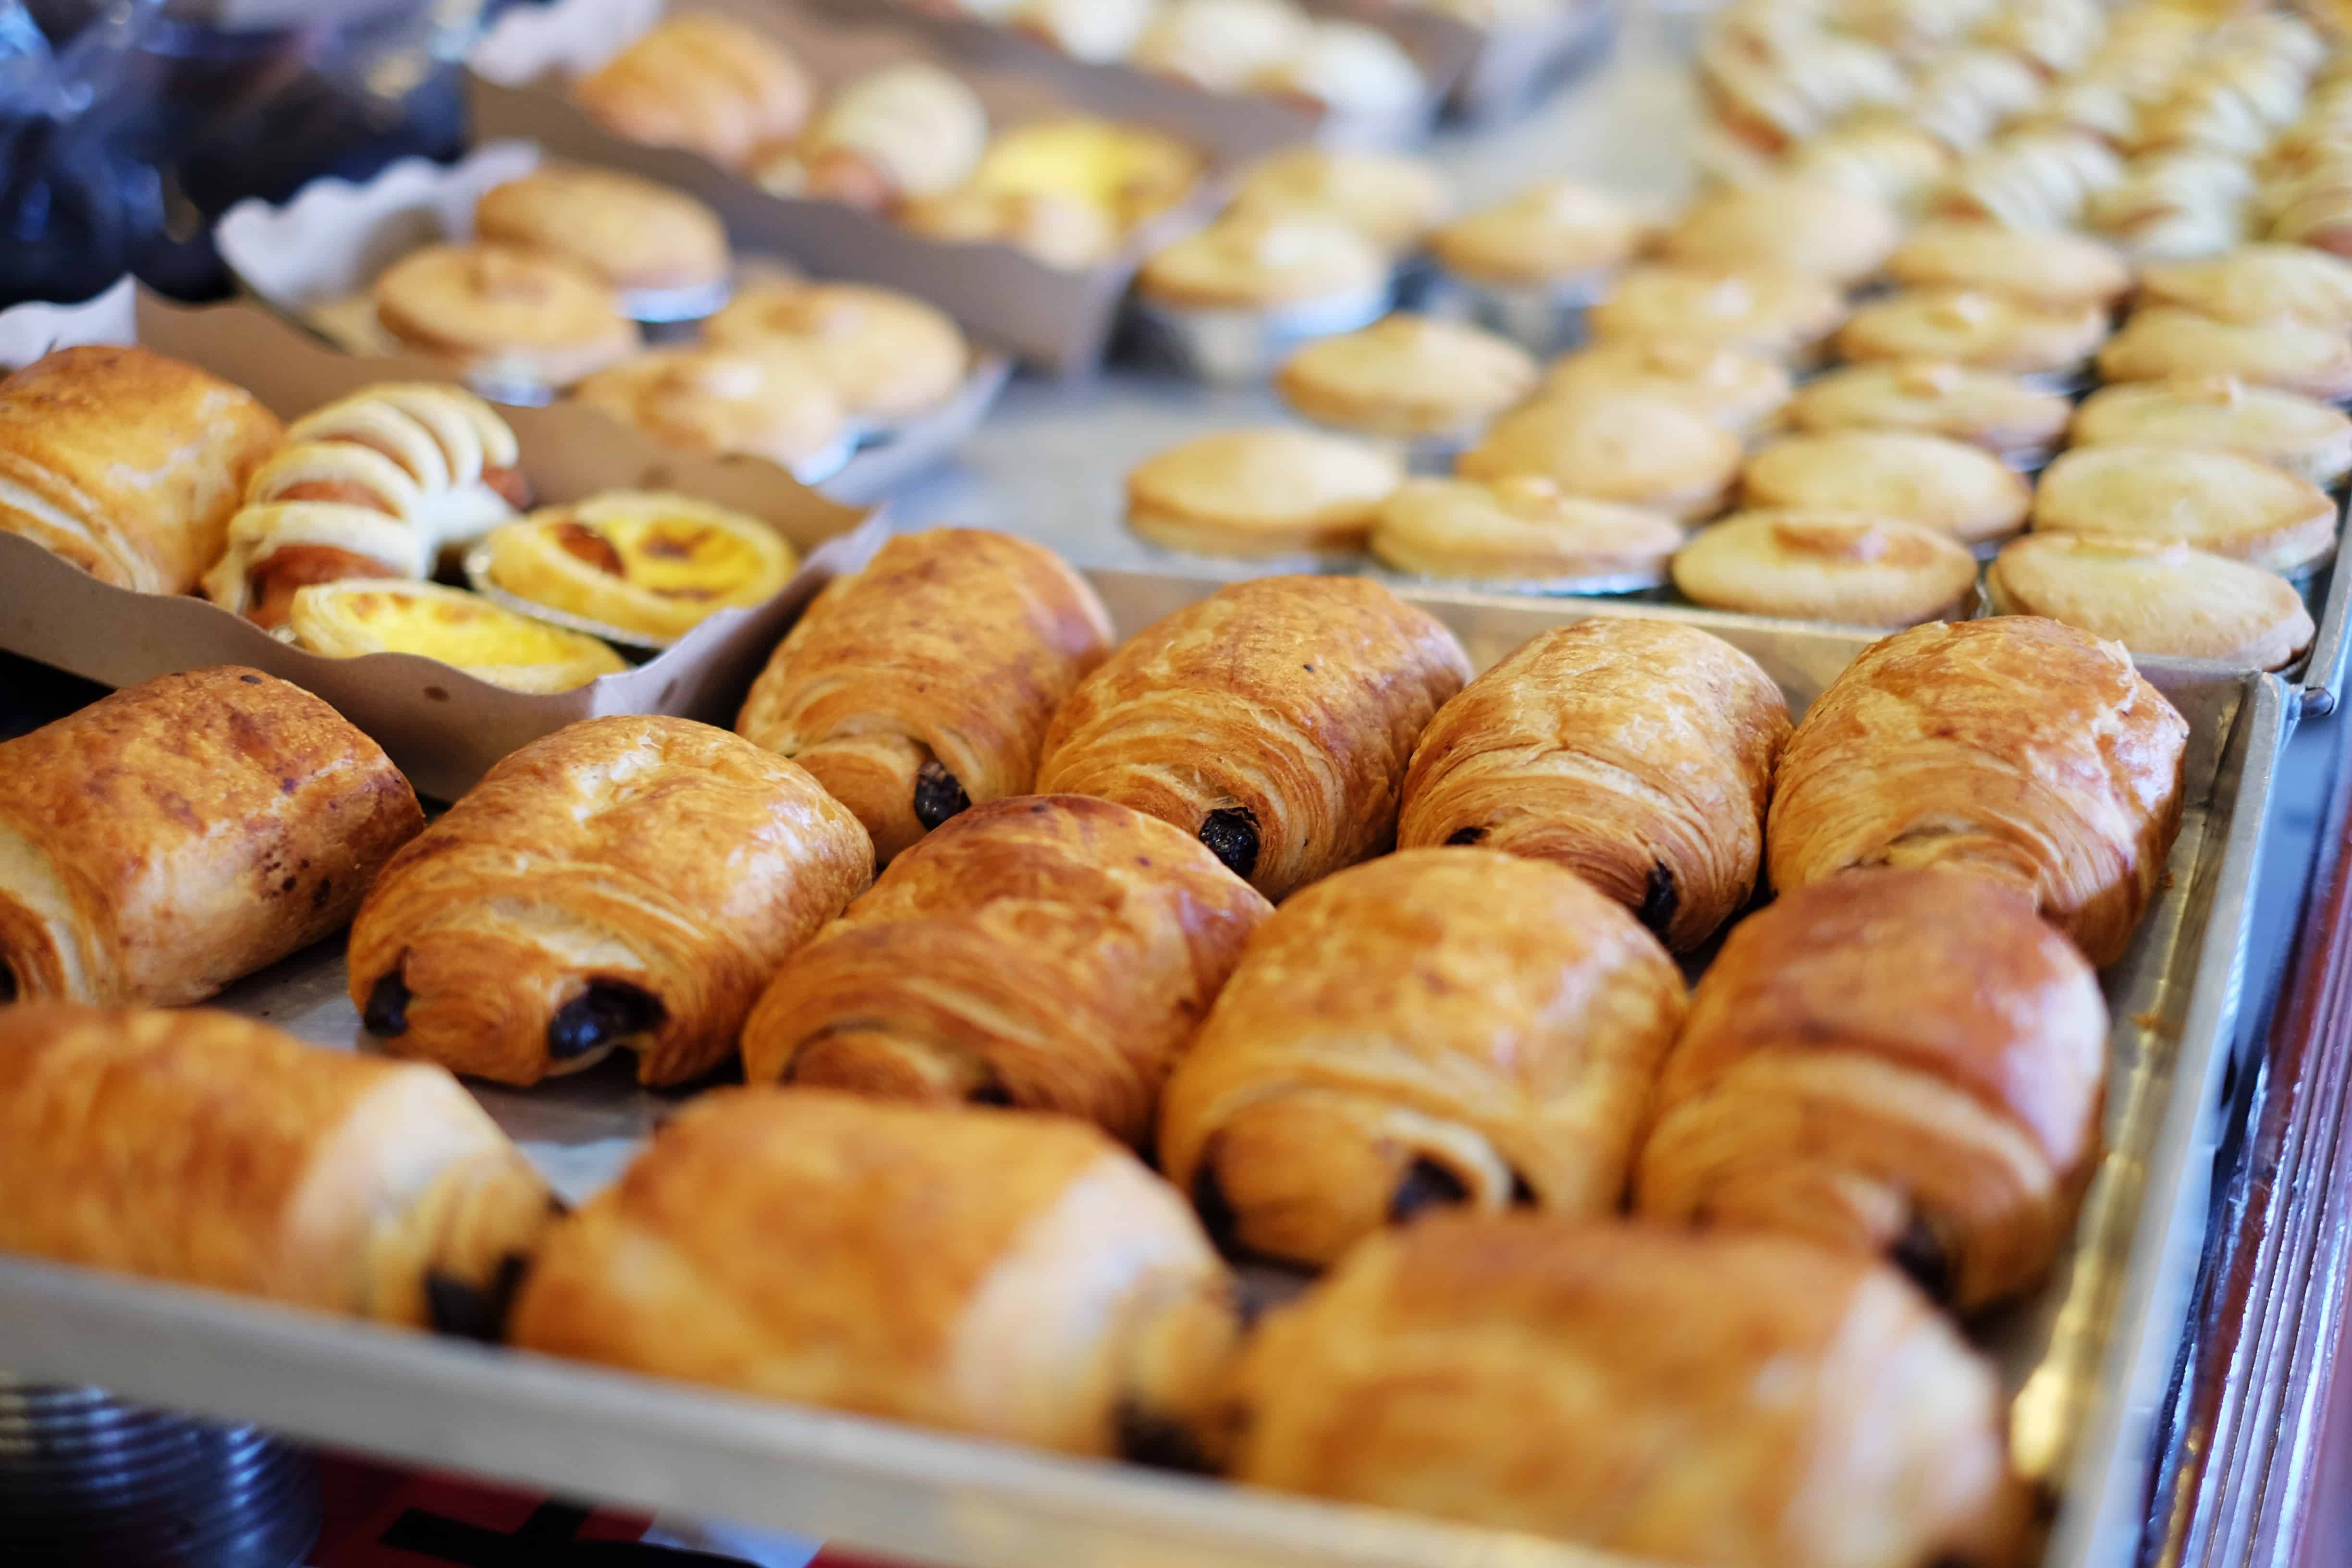 Smell the fresh baked pastries when walk in the streets of Florence in early morning